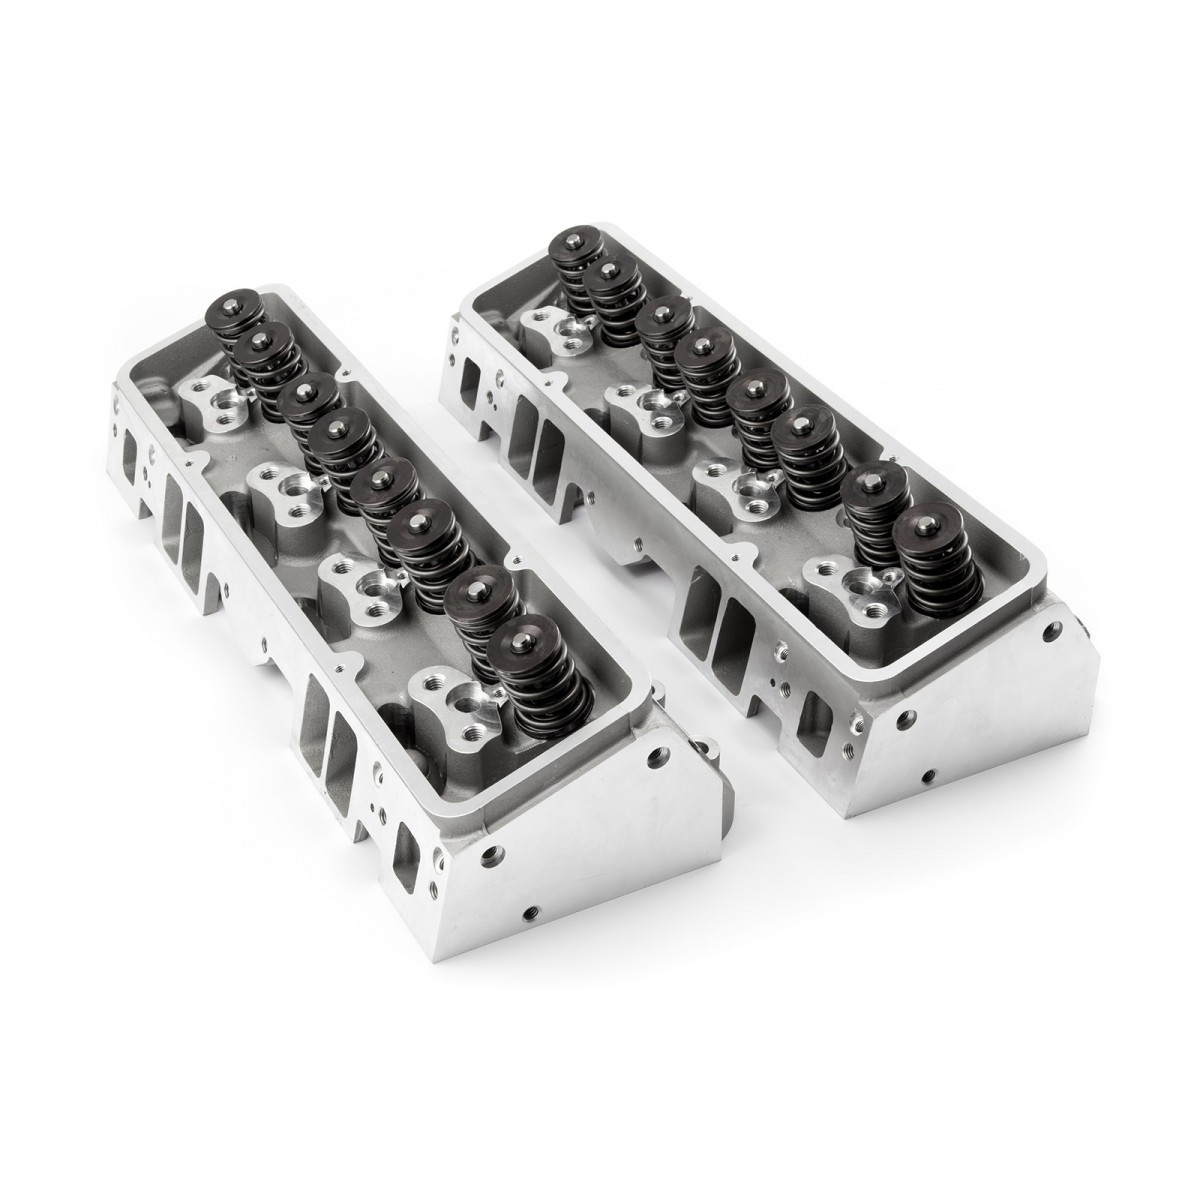 Works With 73-95 Chevrolet Big Block Engines Aluminum Graphite, Steel Bolts//Studs, Silver Exhaust Gasket